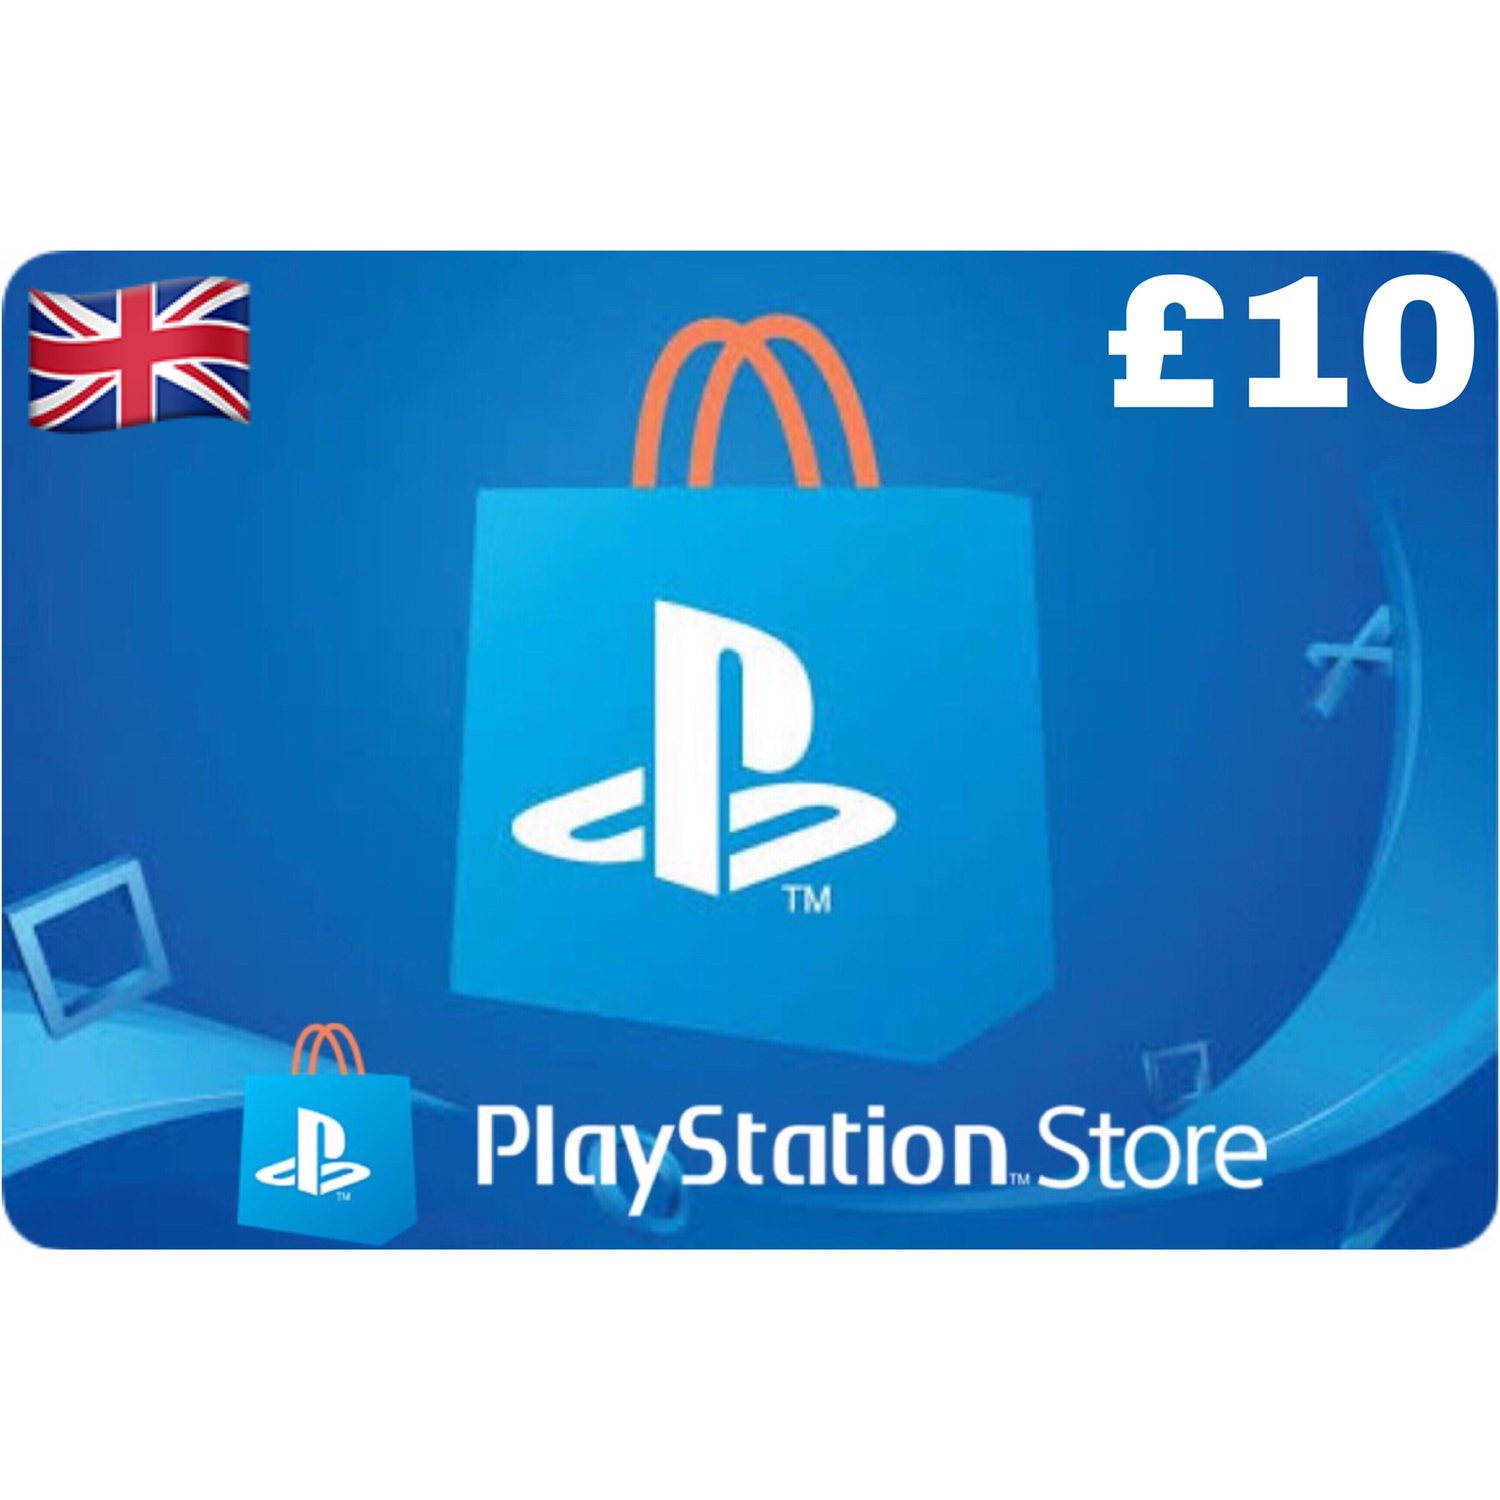 Playstation (PSN Card) UK £10